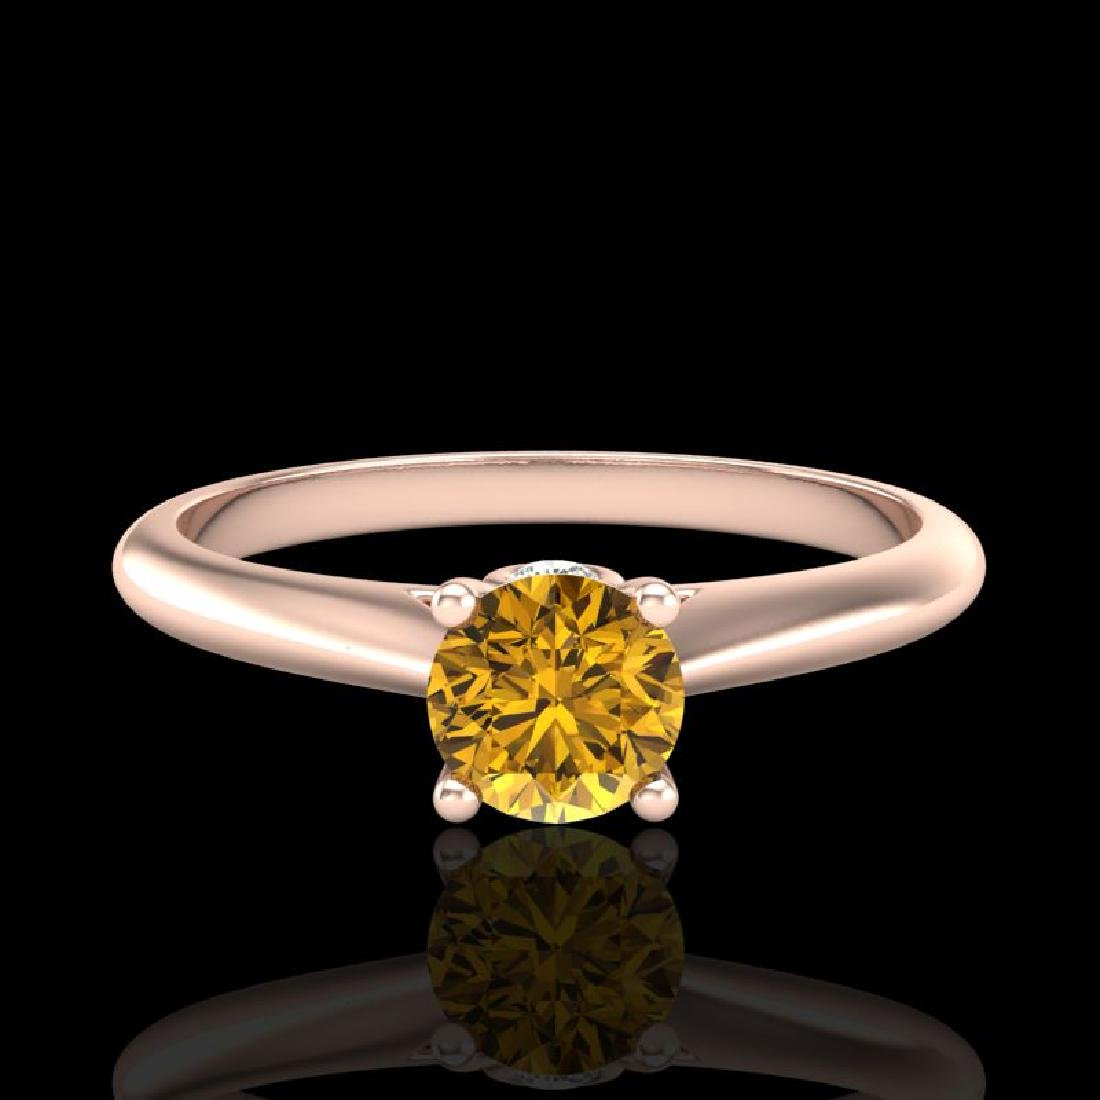 0.4 CTW Intense Fancy Yellow Diamond Engagement Art - 2